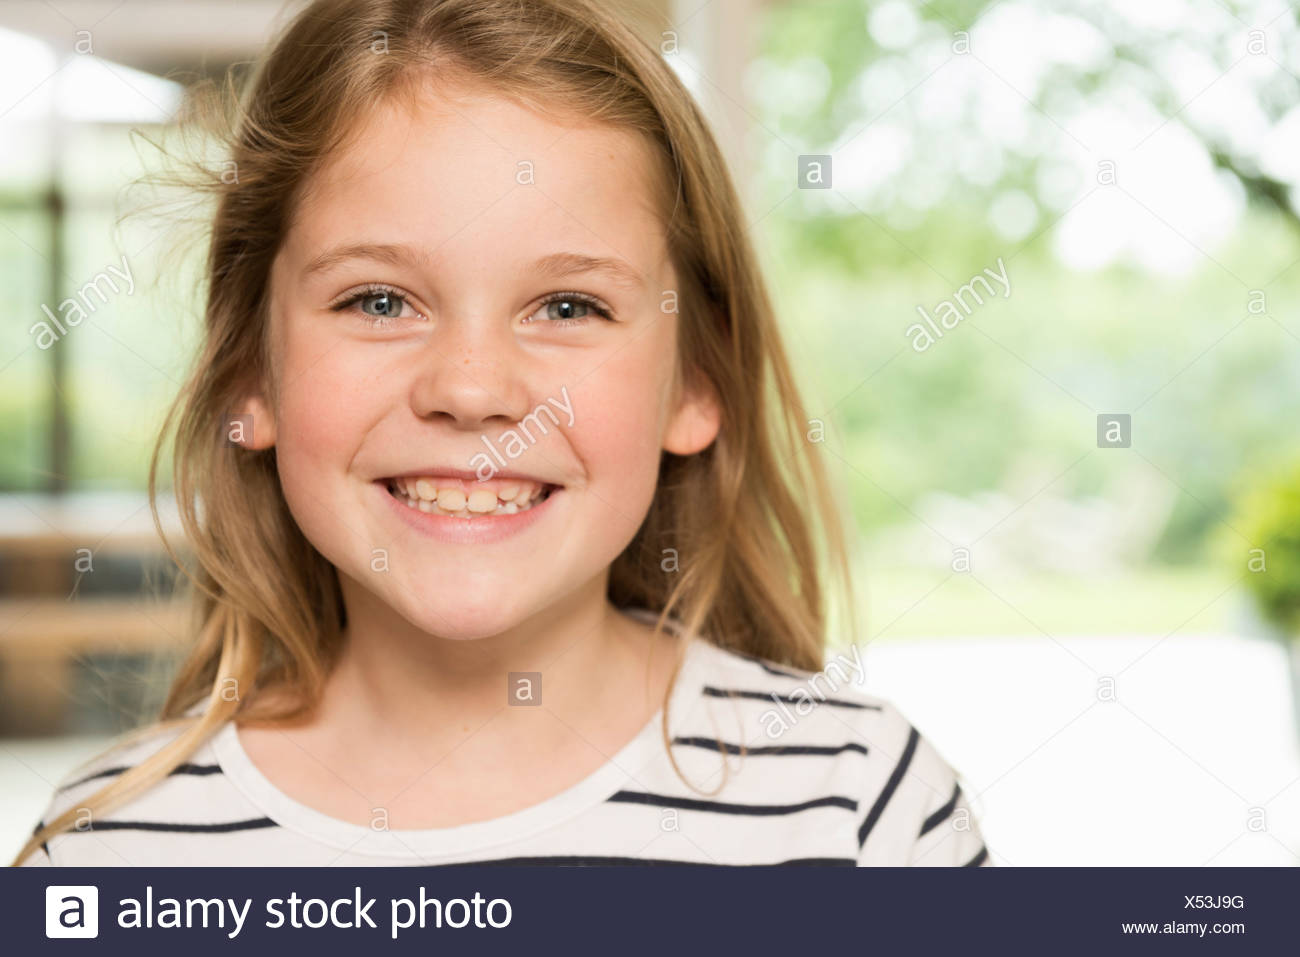 Girl with wide smile - Stock Image